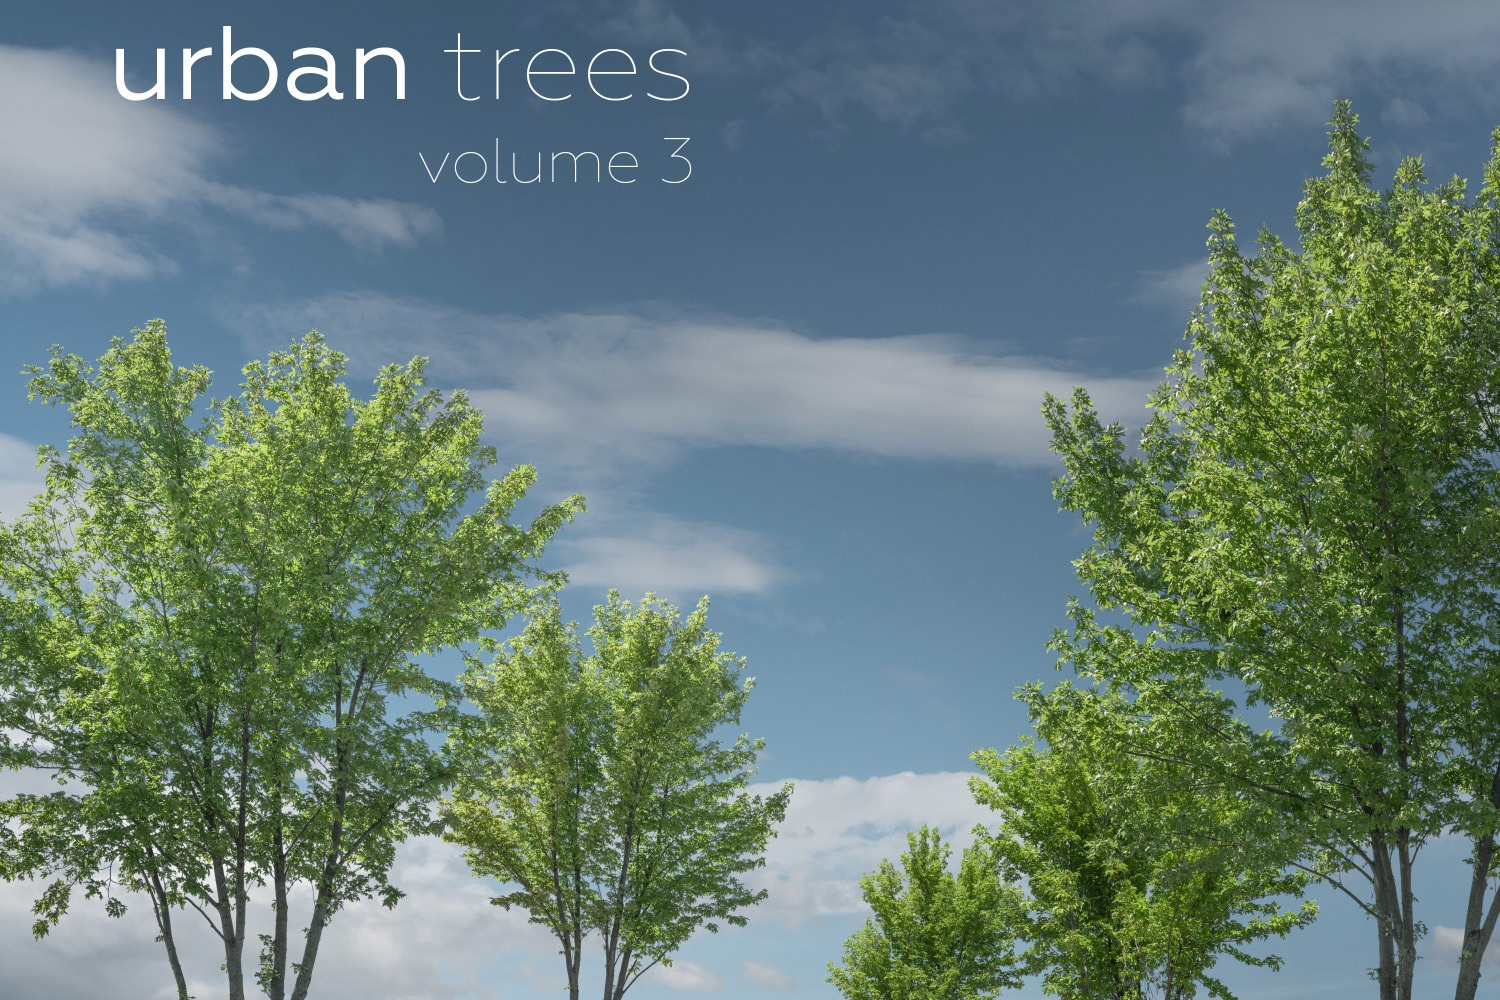 URBAN TREES Volume 3